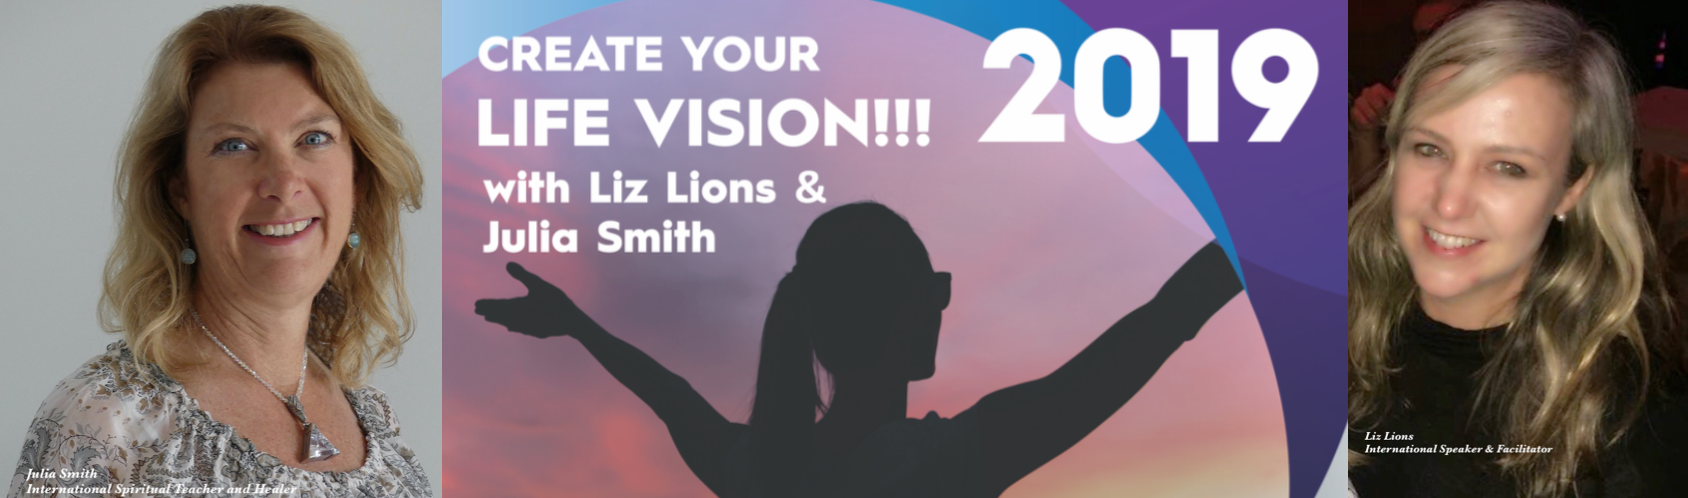 create your best life vision workshop banner pic feb19